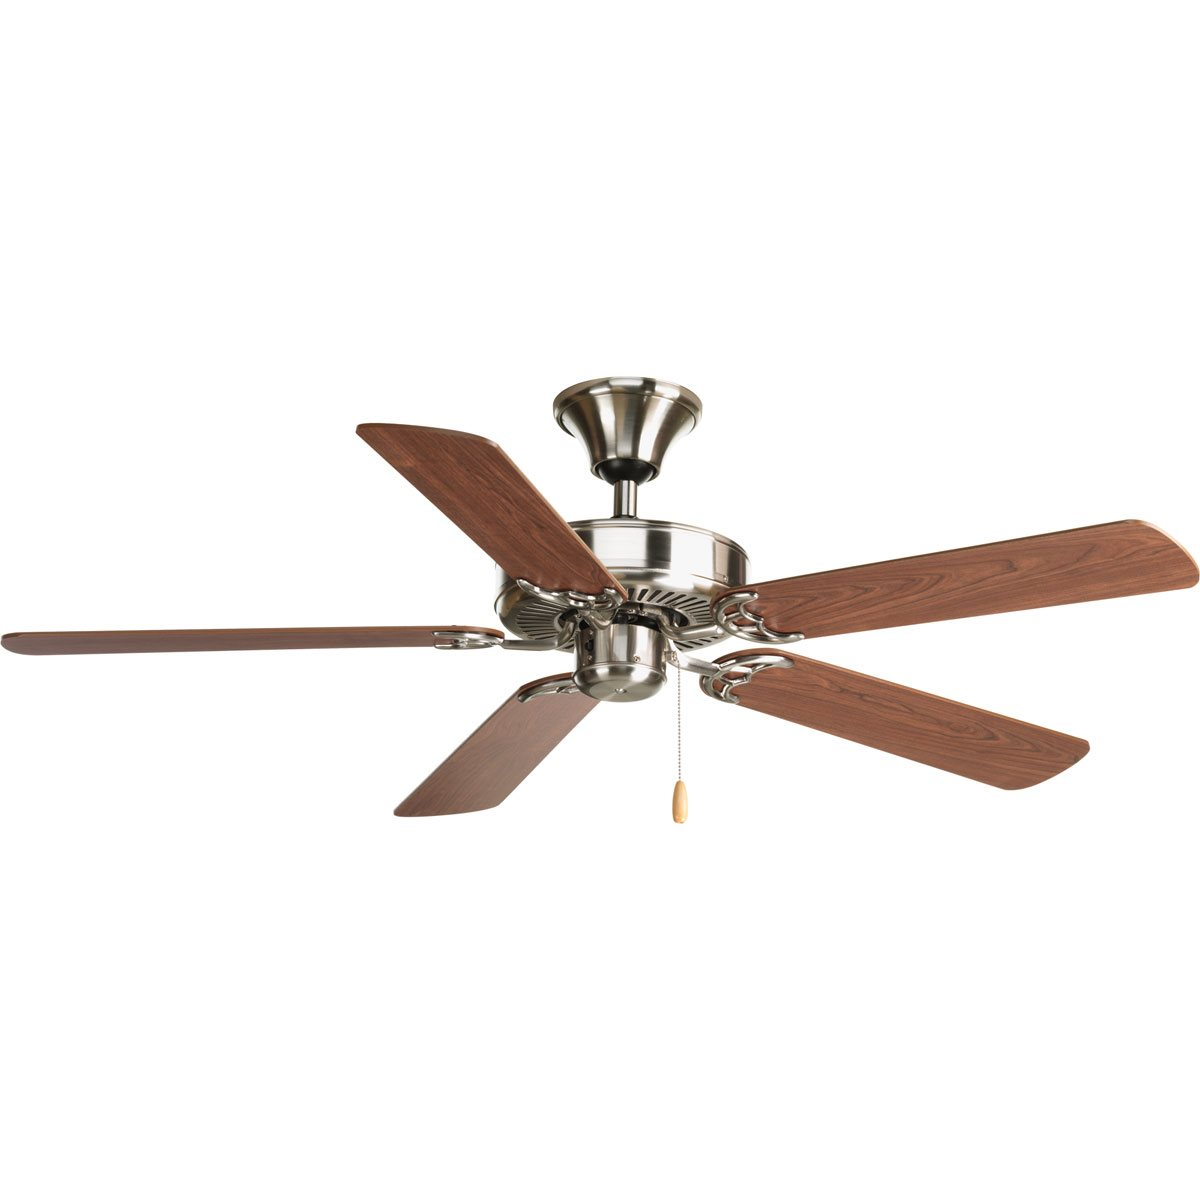 AirPro P2501 52 Builder Transitional Ceiling Fan PG P2501